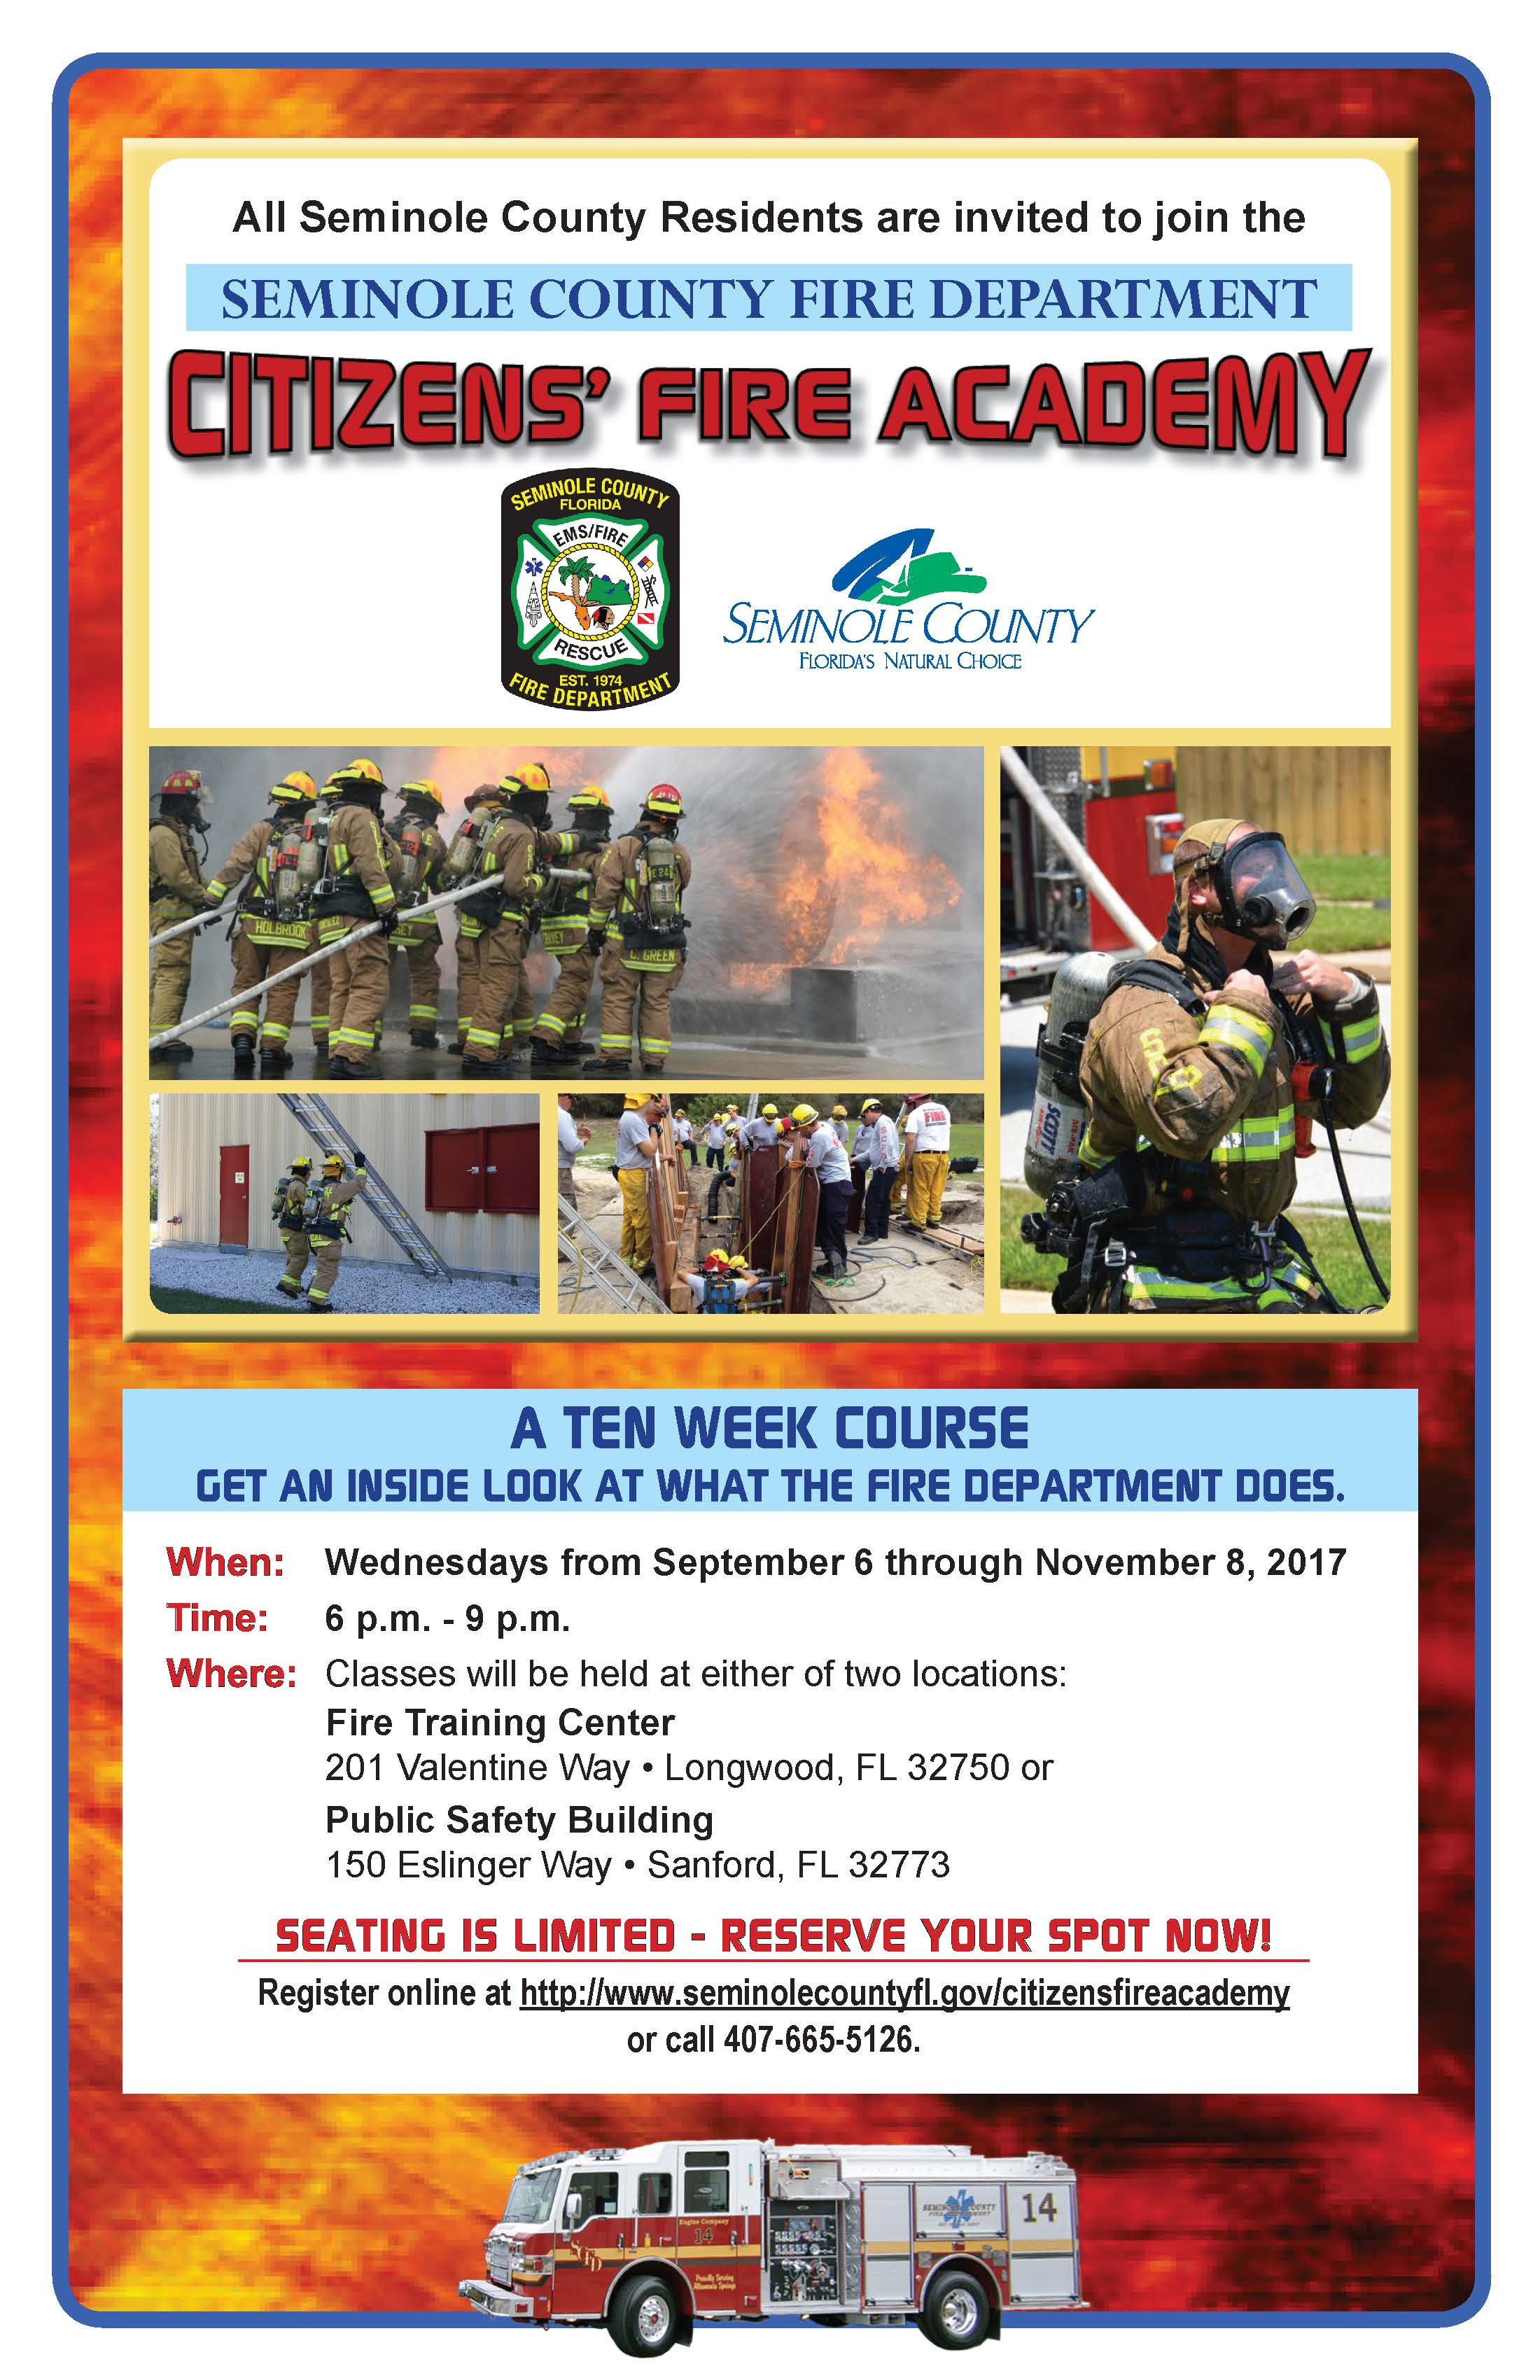 SCFD Citizens Fire Academy 2017 News Image